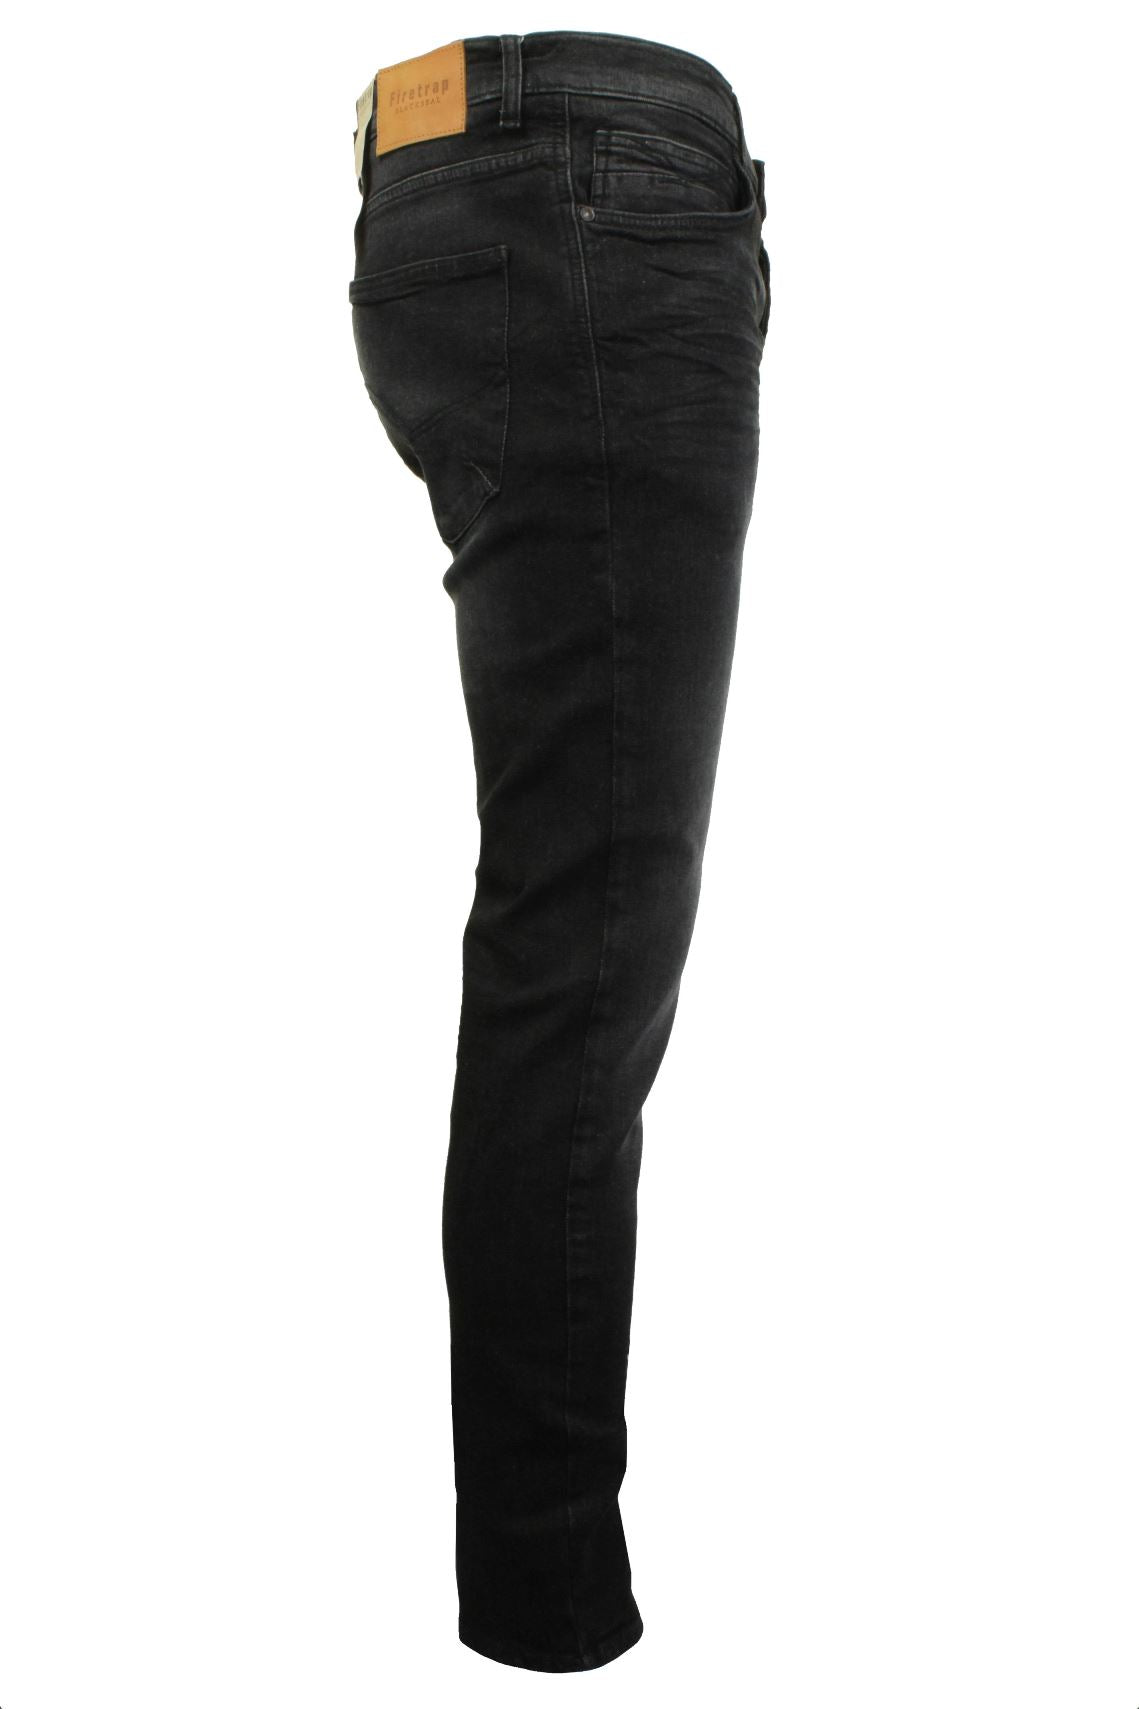 Mens Jeans by Firetrap 'Denhoff' Skinny Fit with Button Fly-2